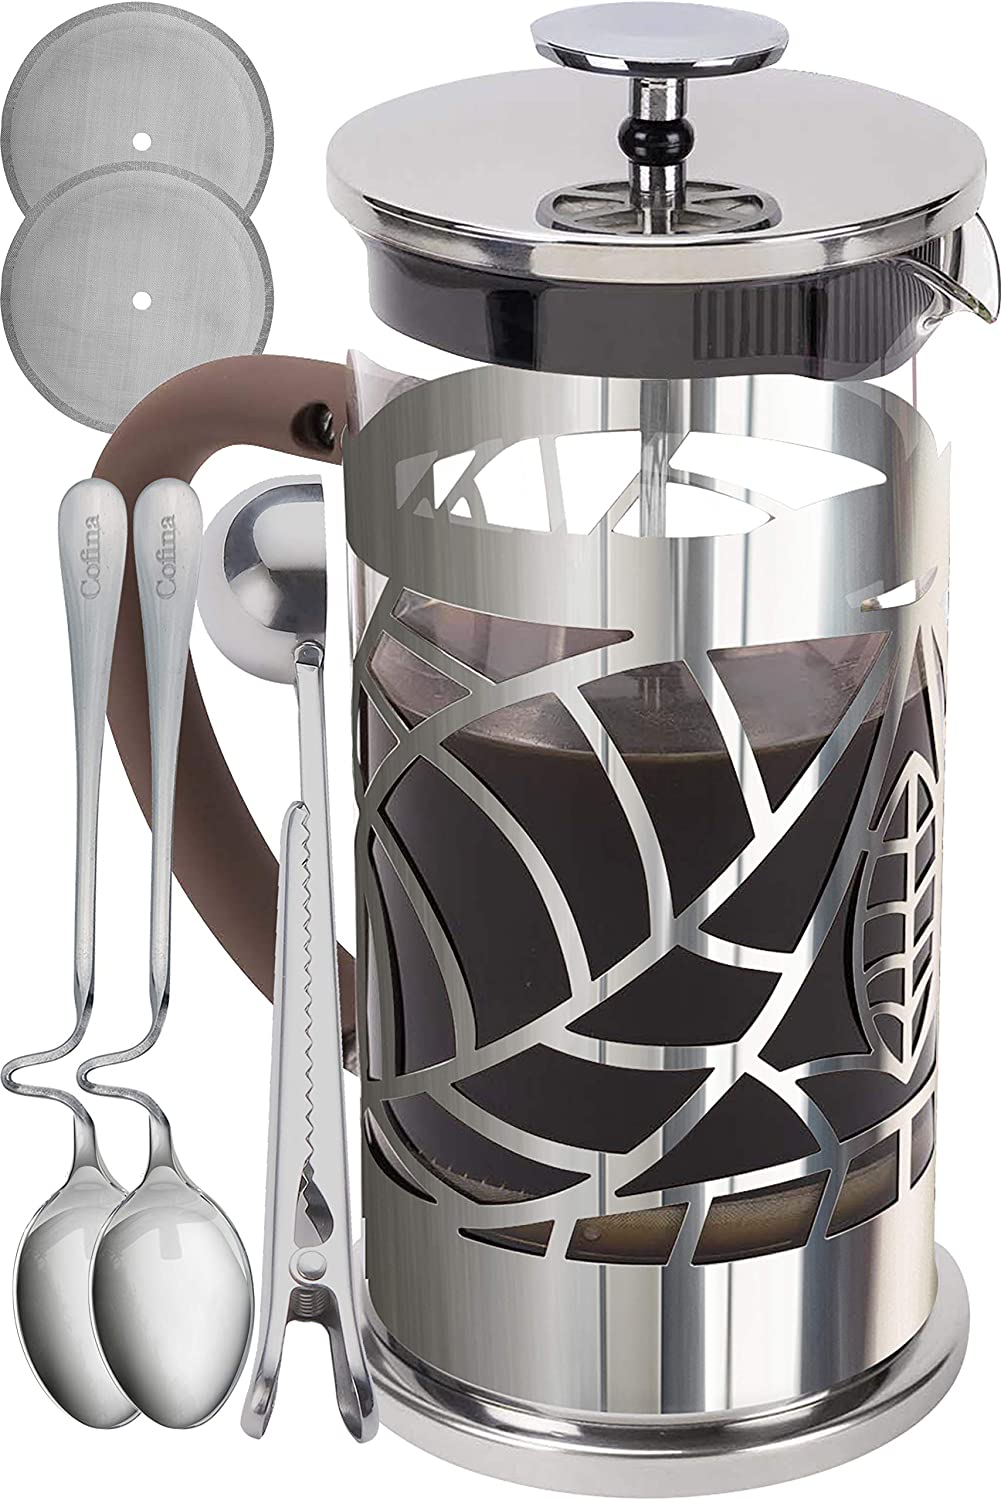 Cofina French Press Coffee Maker – 34 oz Large Stainless Steel Glass French Coffee Press Gift Bundle